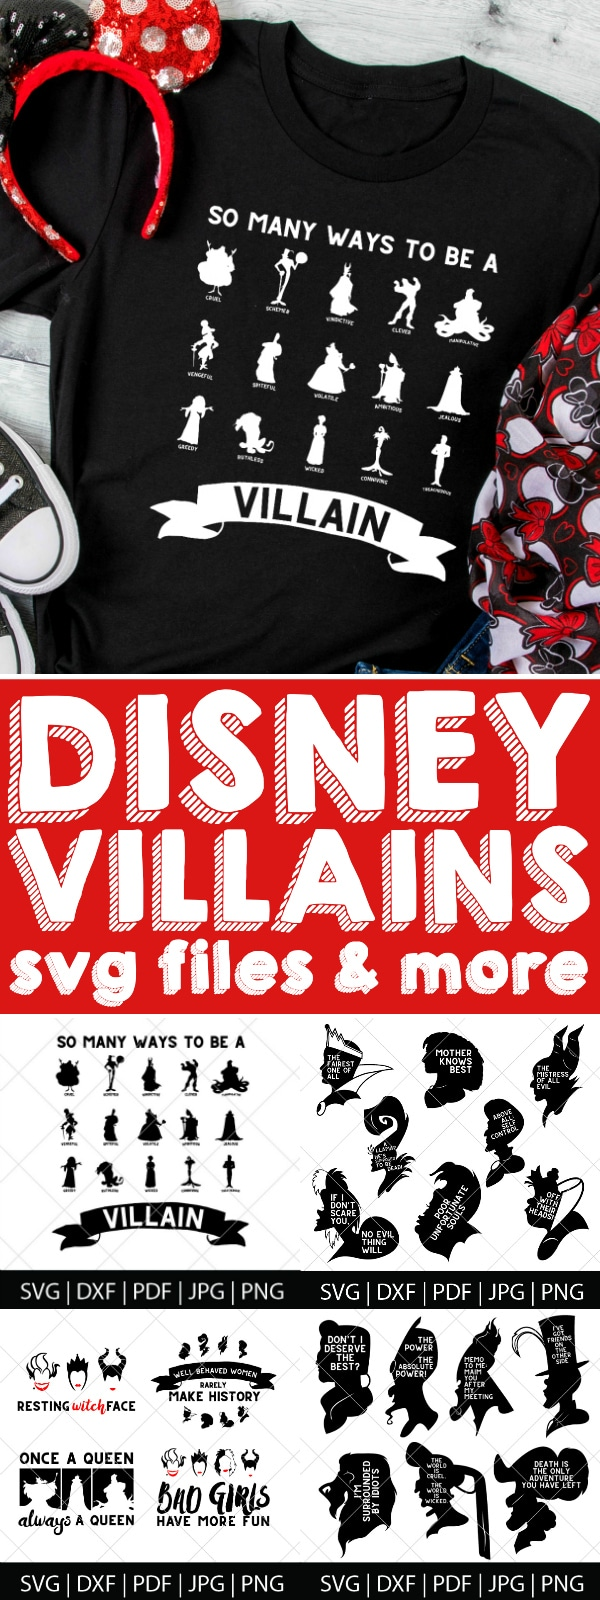 So many ways to be a Disney Villain SVG Files! Tons of new Halloween SVG files have been added to the shop celebrating our favorite bad guys, including the Evil Queen, Maleficent, Ursula, Cruella de Vil, Jafar, Captain Hook, Gaston and more! These digital files are perfect for DIY Halloween shirts, decor, party invites and more! | THE LOVE NERDS #DisneyCricut #DIYHalloween #HalloweenCricut